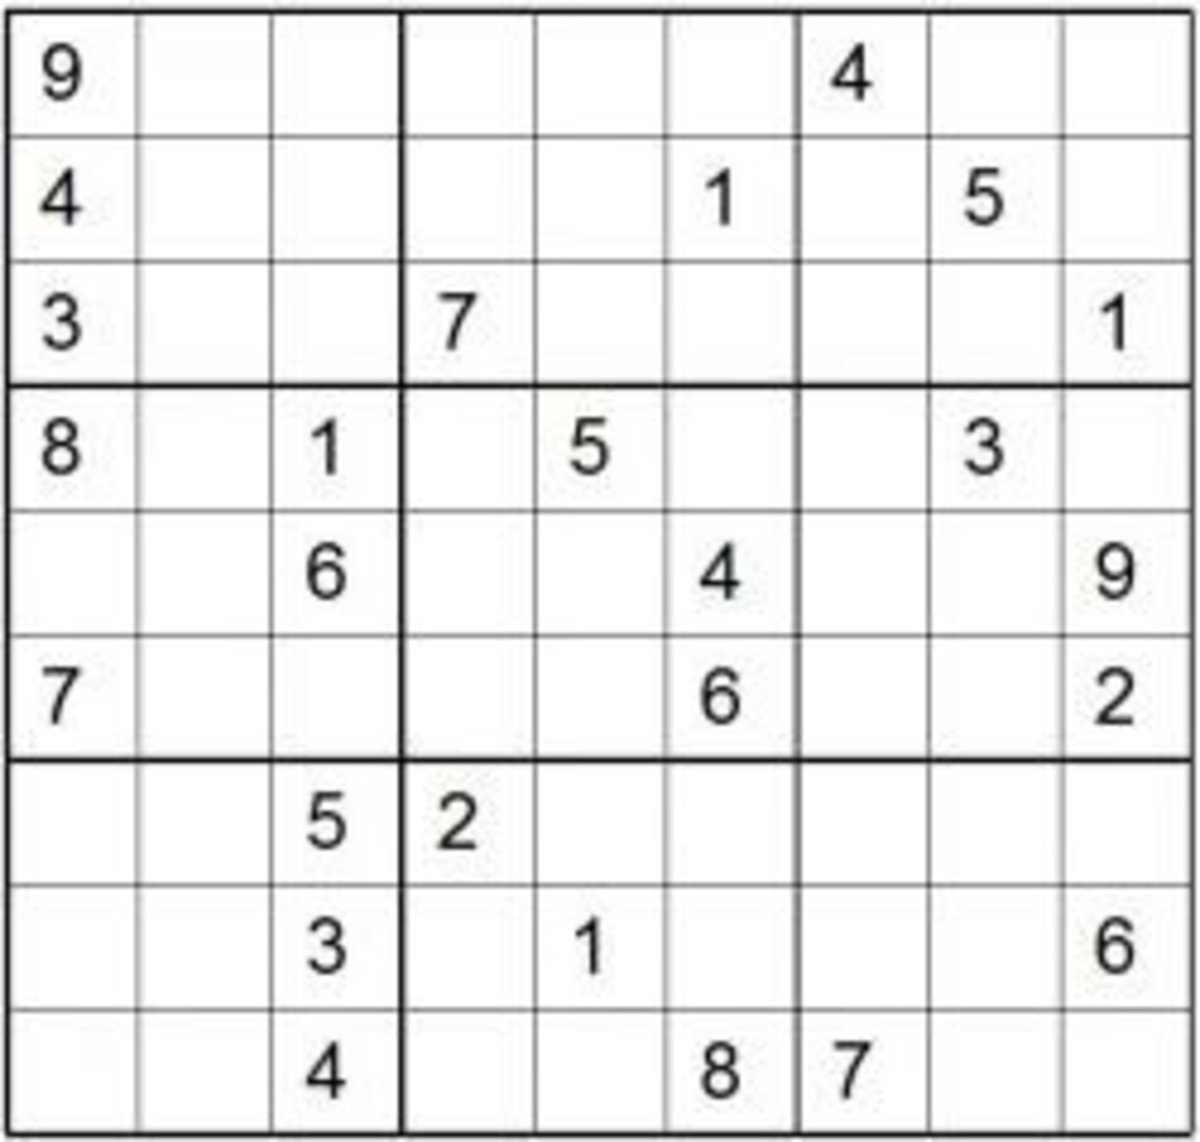 photo about Printable Sudoku Puzzles Medium titled Print Sudoku Puzzles HubPages